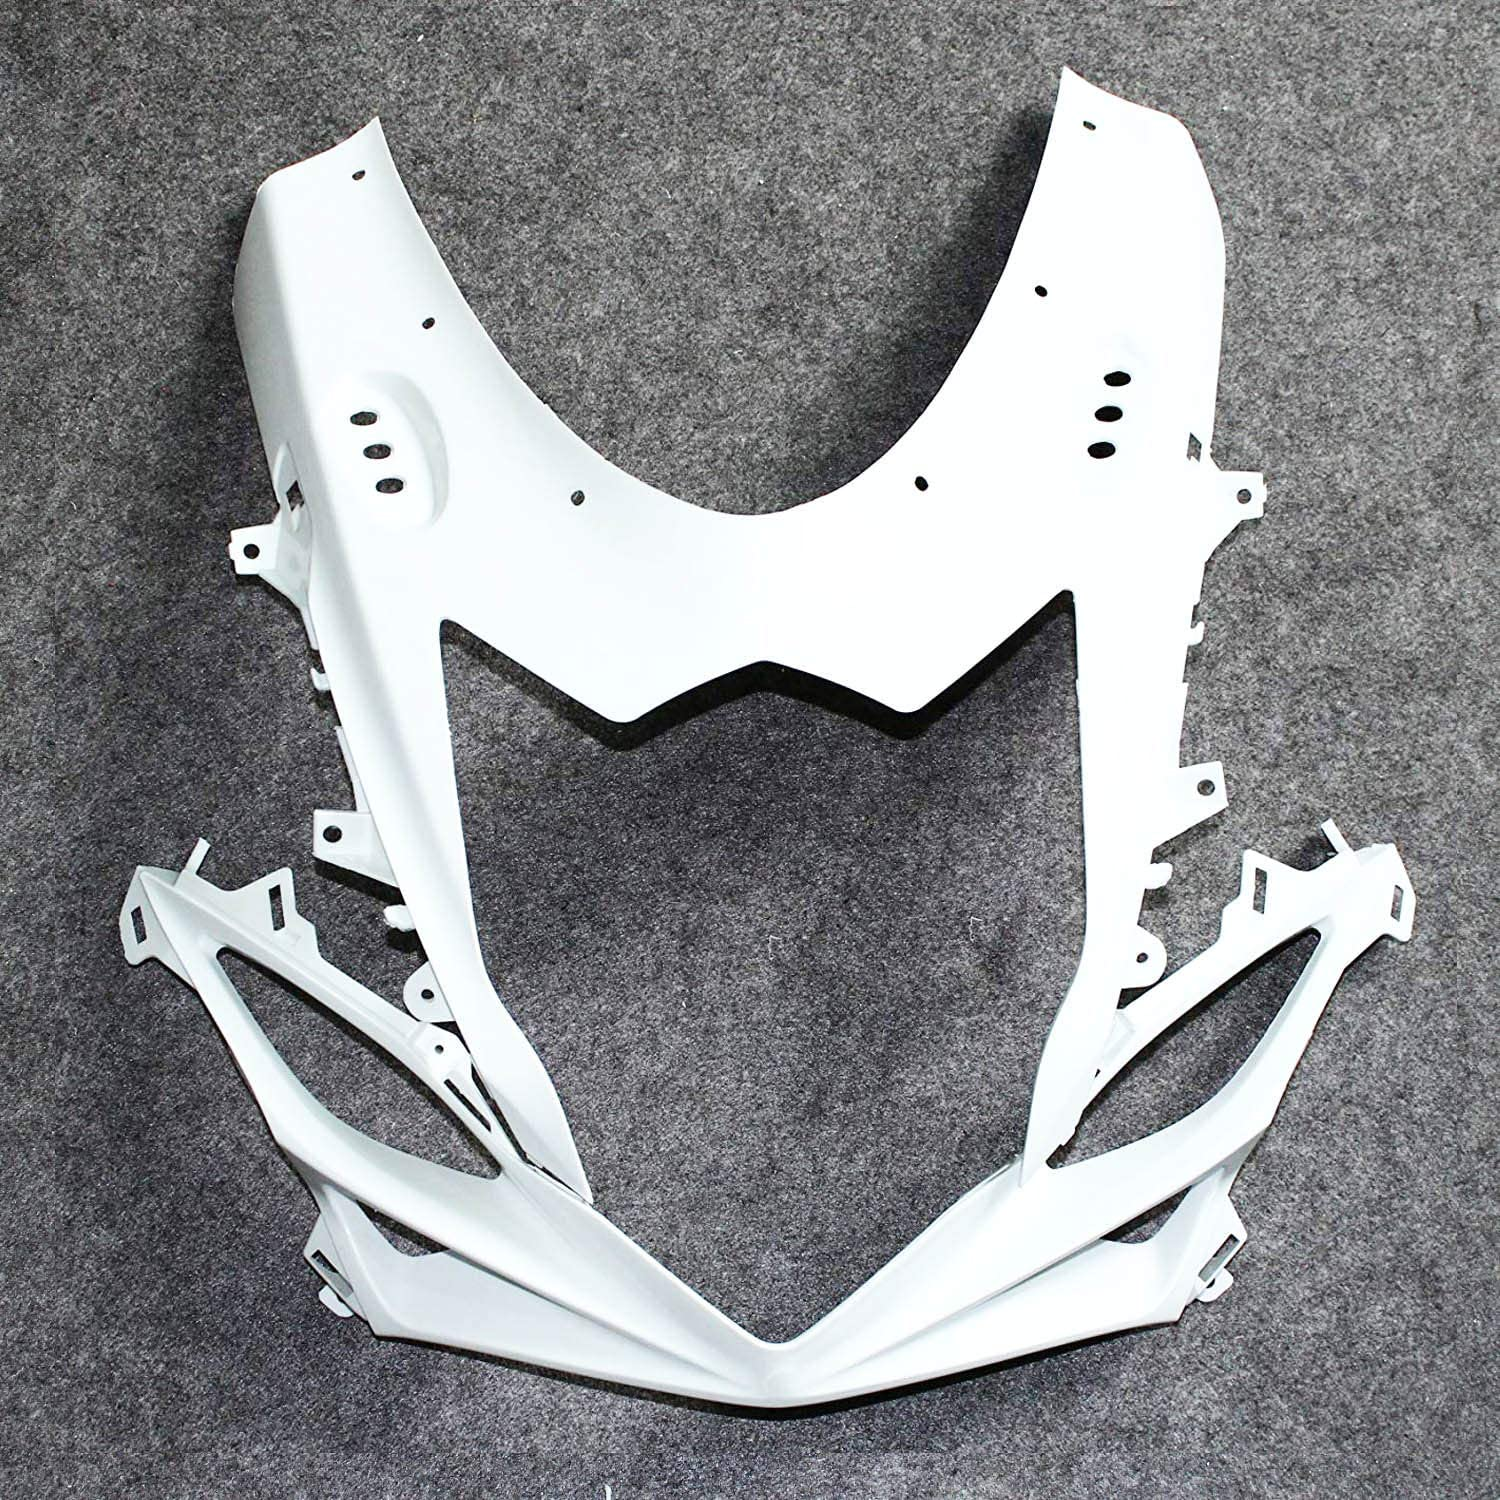 PROMOTOR Unpainted Motorcycle Fairing Kit Injection Body Kit for Suzuki GSXR600 GSXR750 K11 2011-2017 25 Pcs